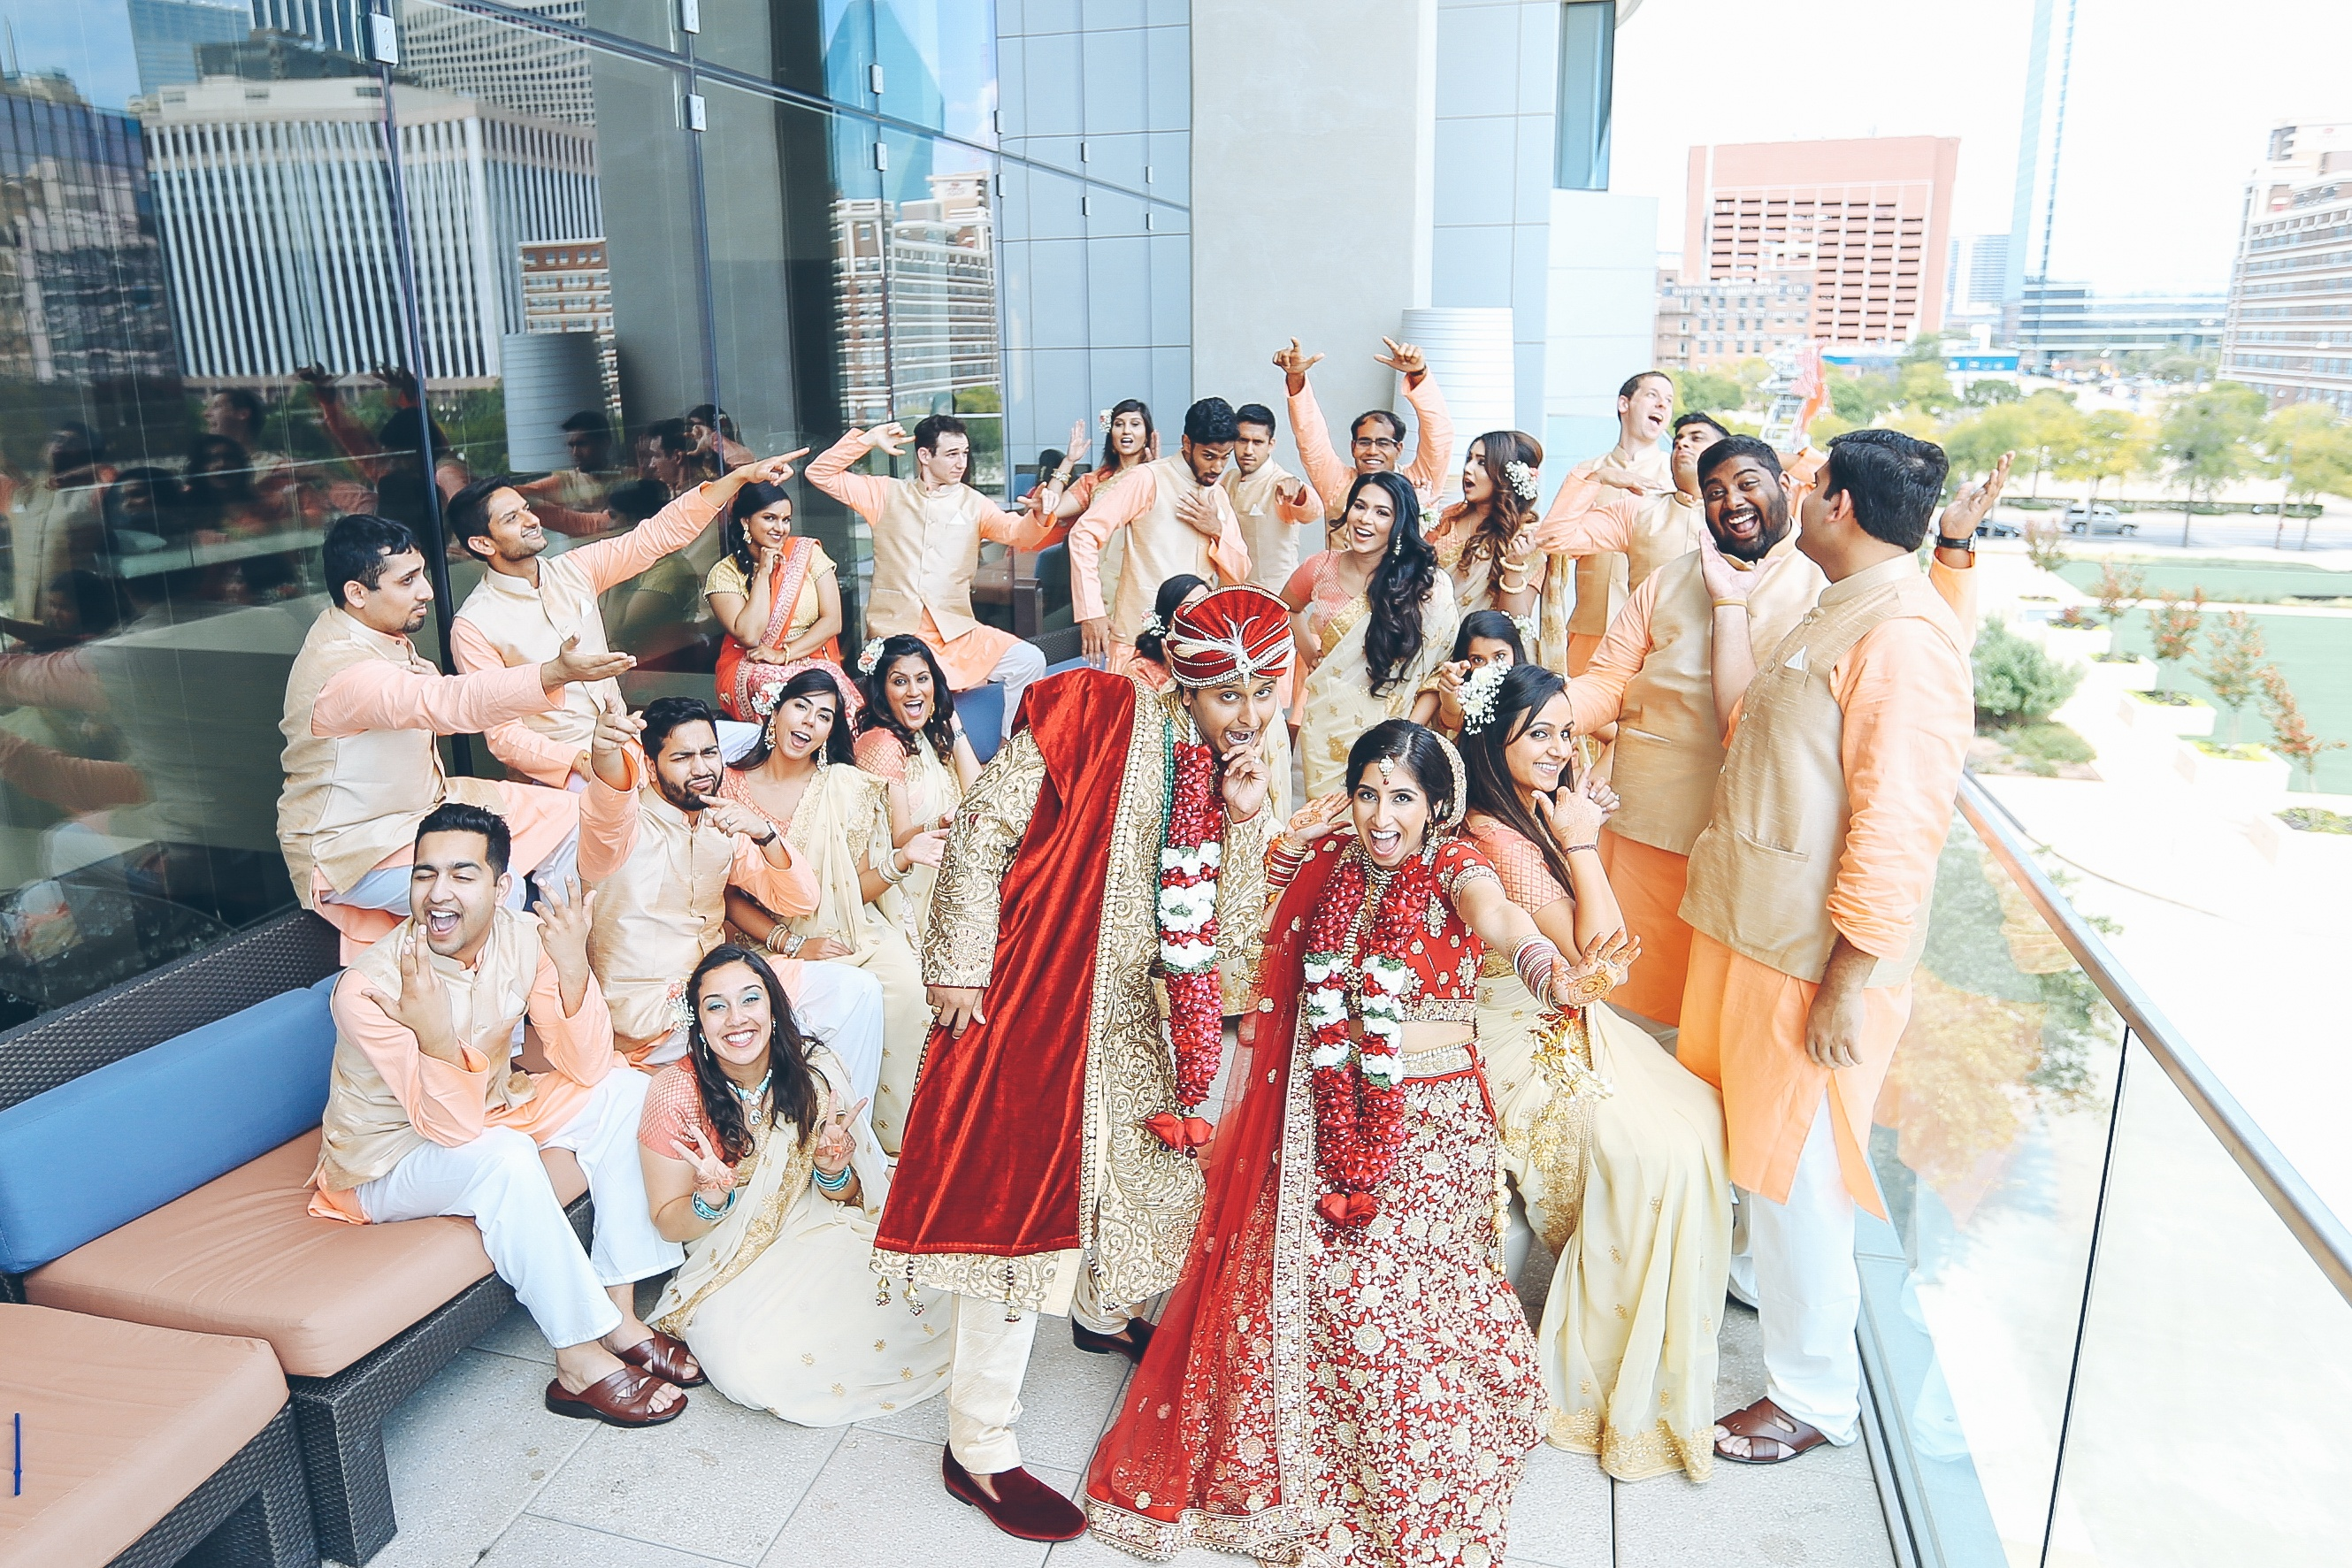 Top 9 Indian Wedding Bridal Party Ceremony Entrance Songs